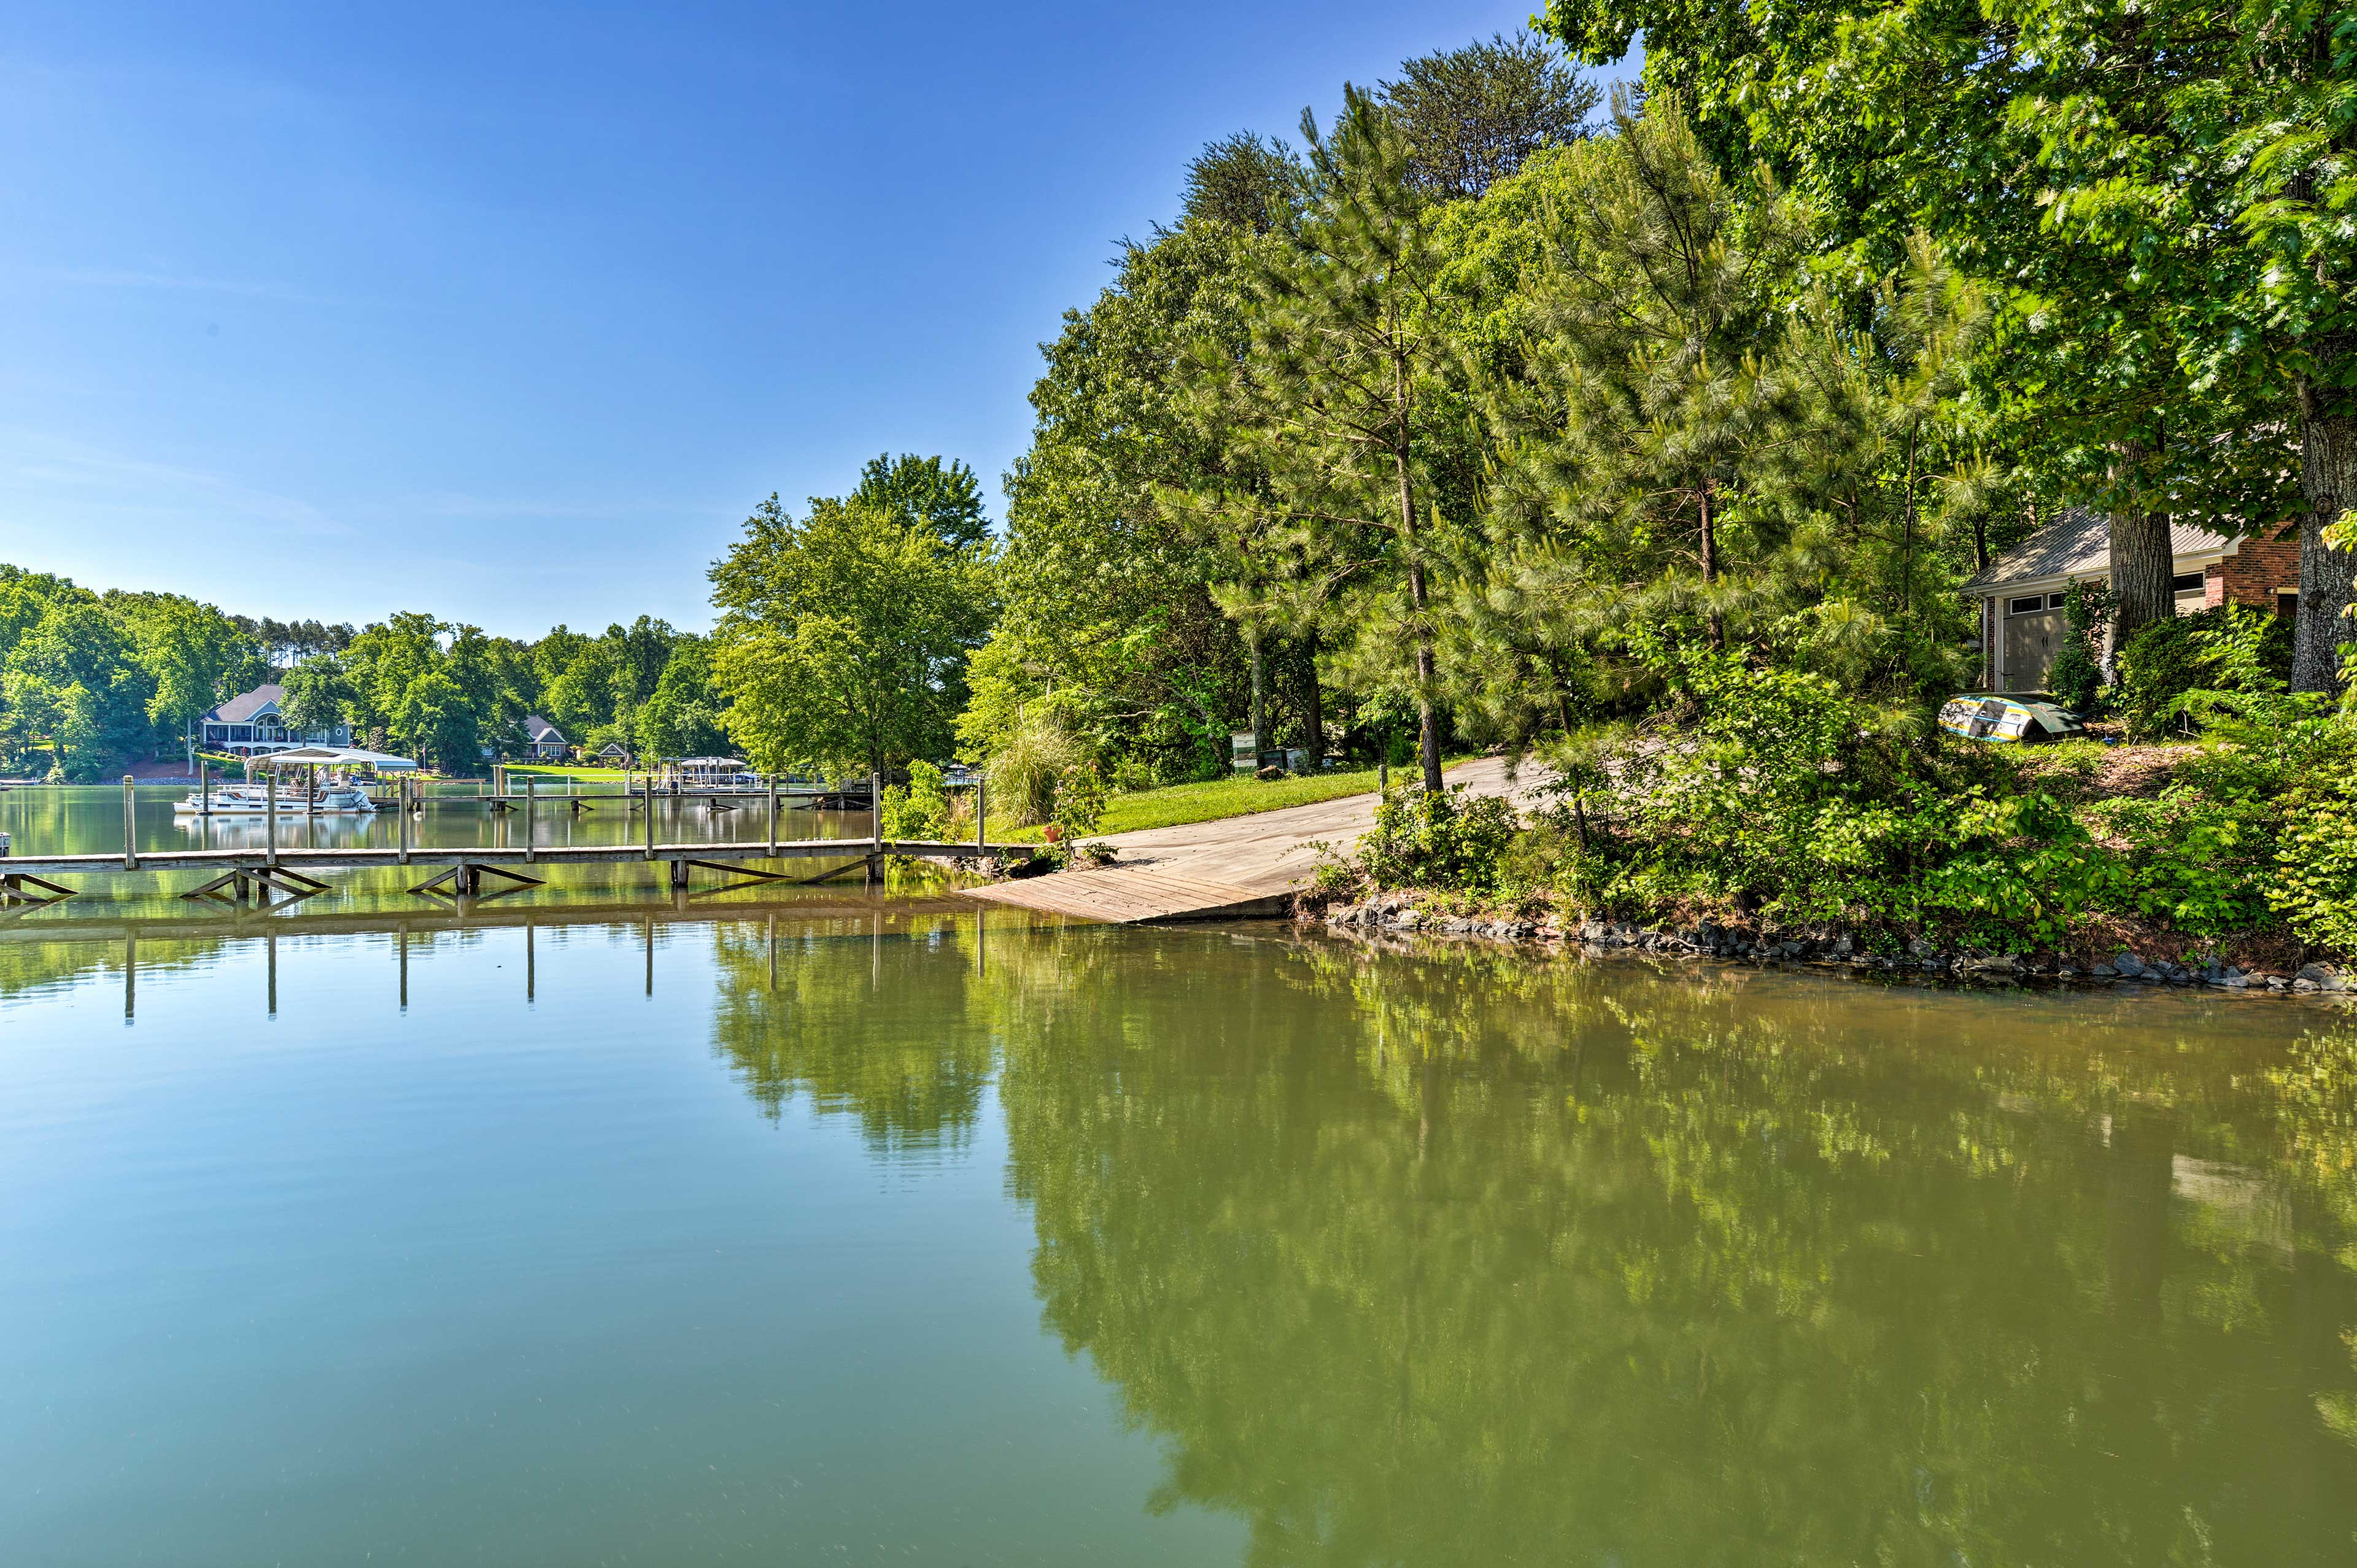 A private boat ramp is available on the adjacent property.